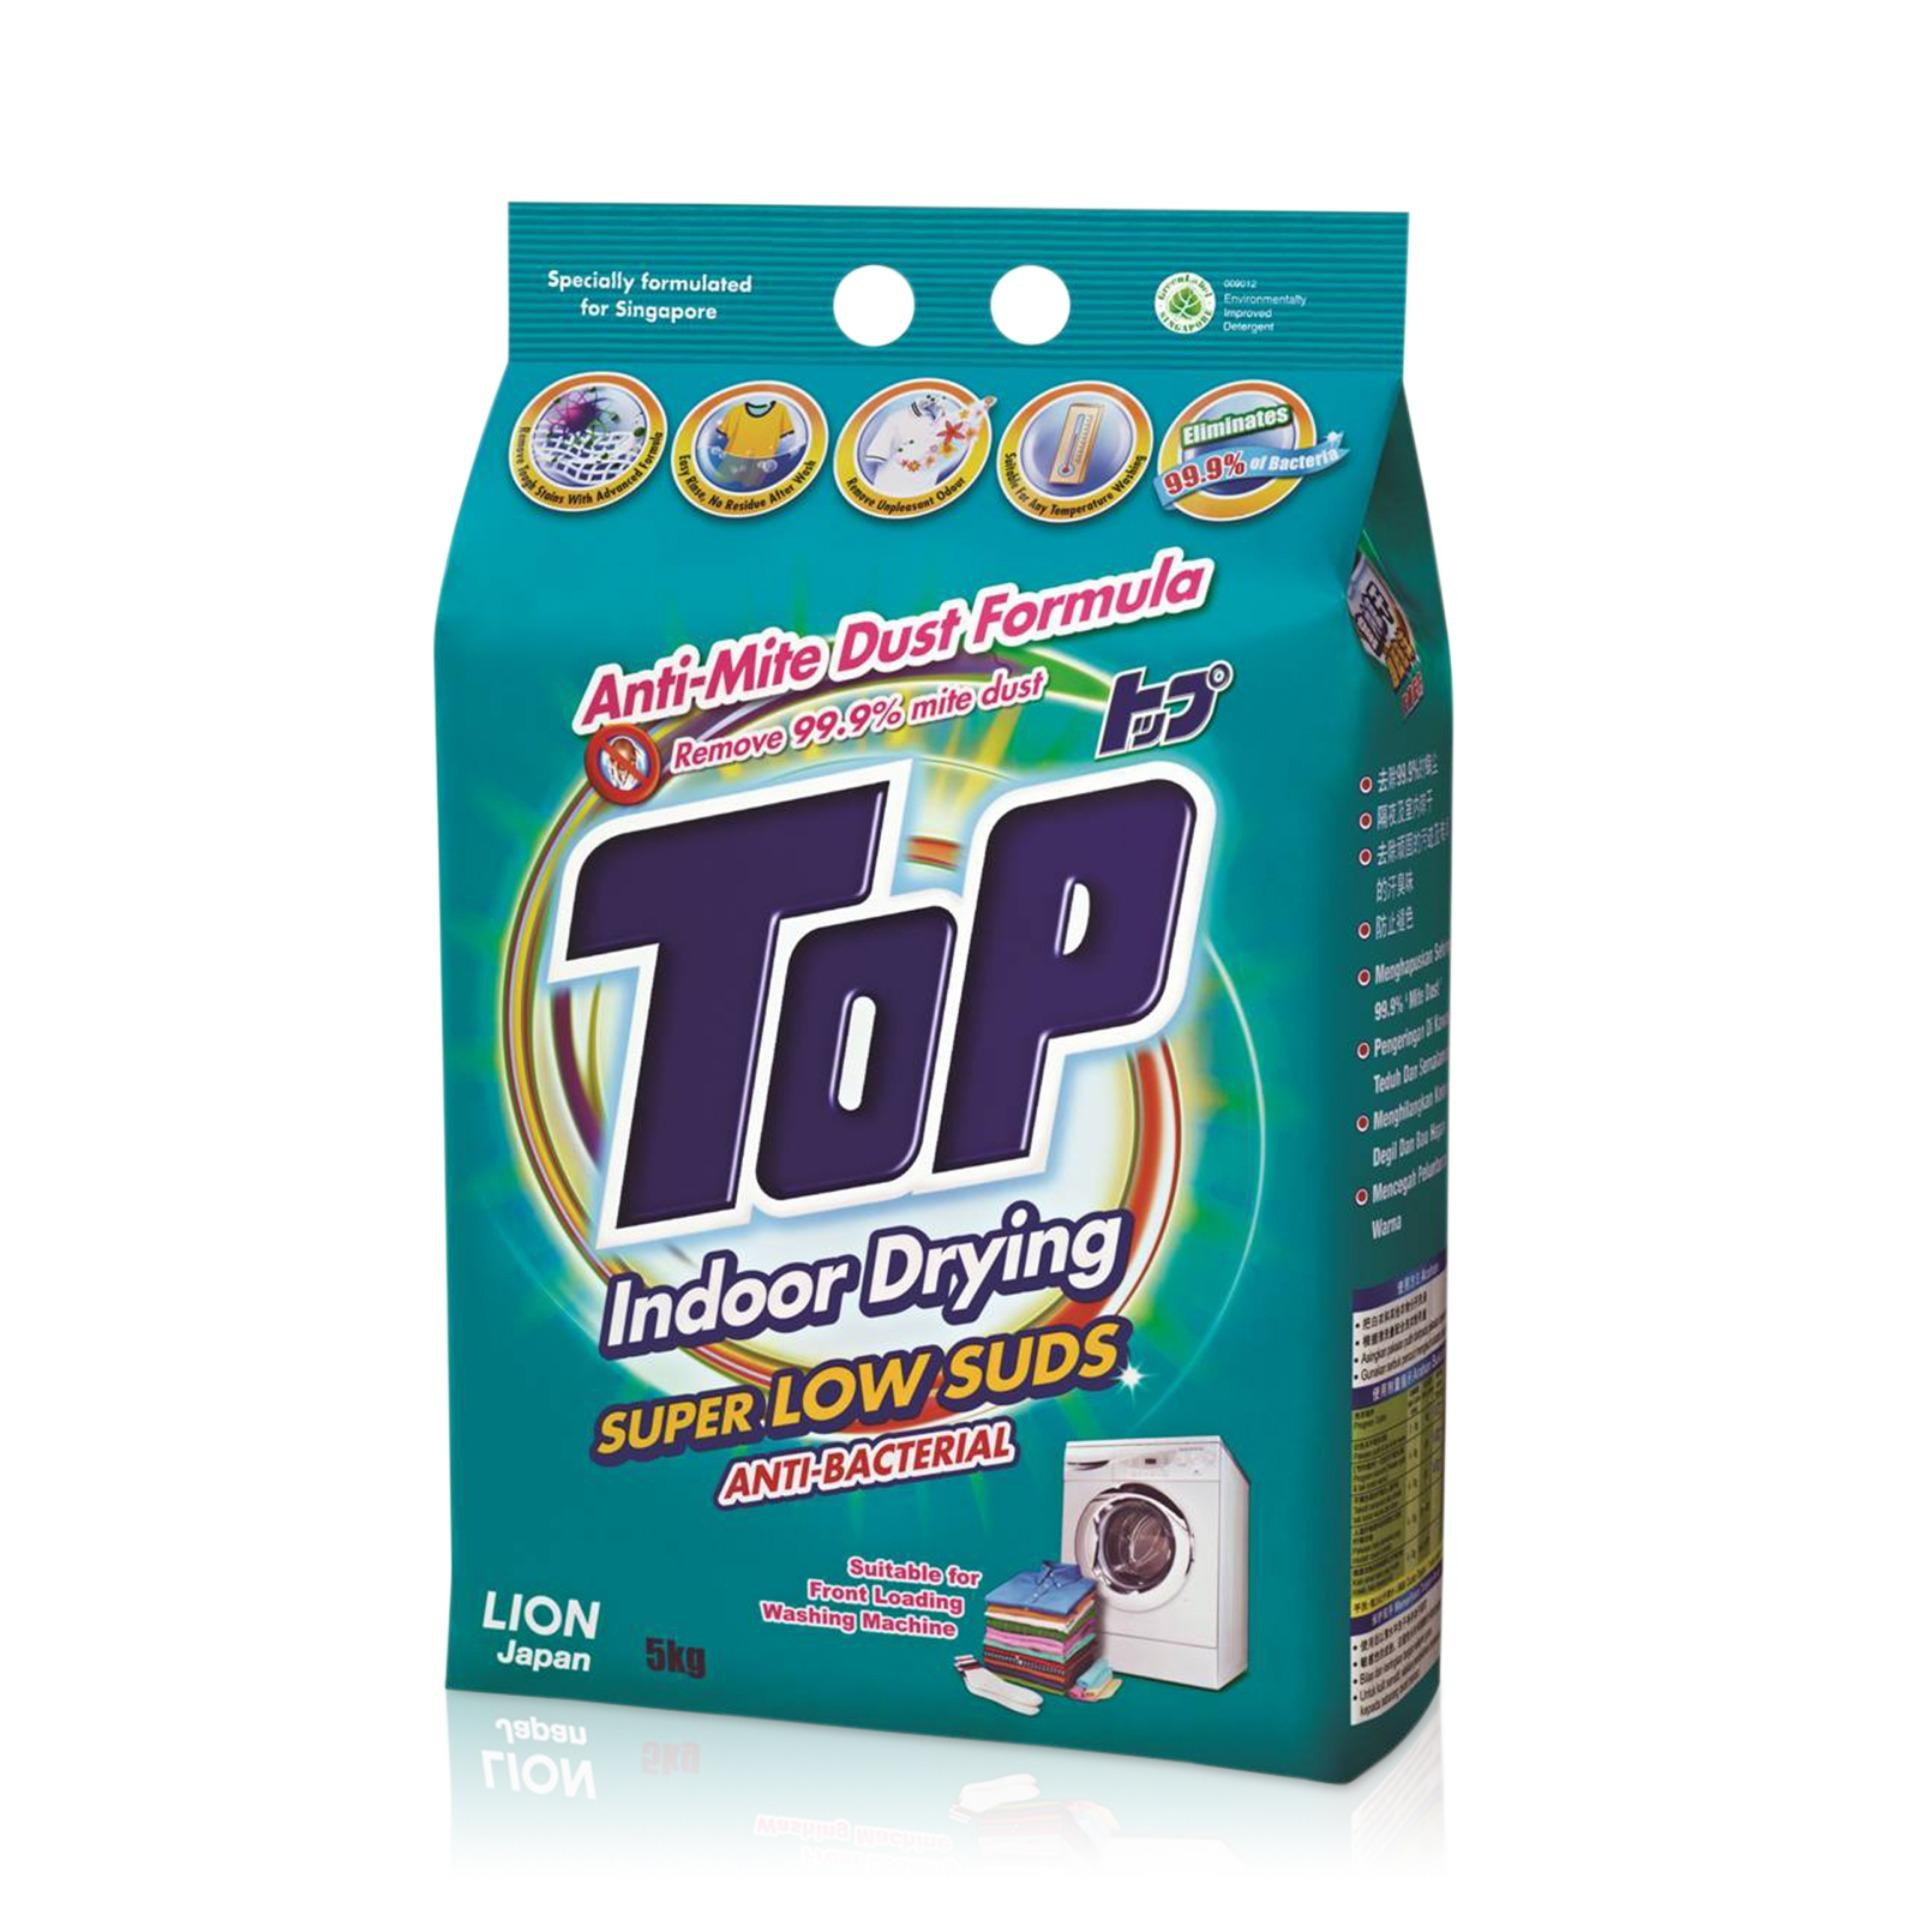 Sale Top Detergent Anti Mite Dust Super Low Suds Anti Bacterial 5Kg Online On Singapore